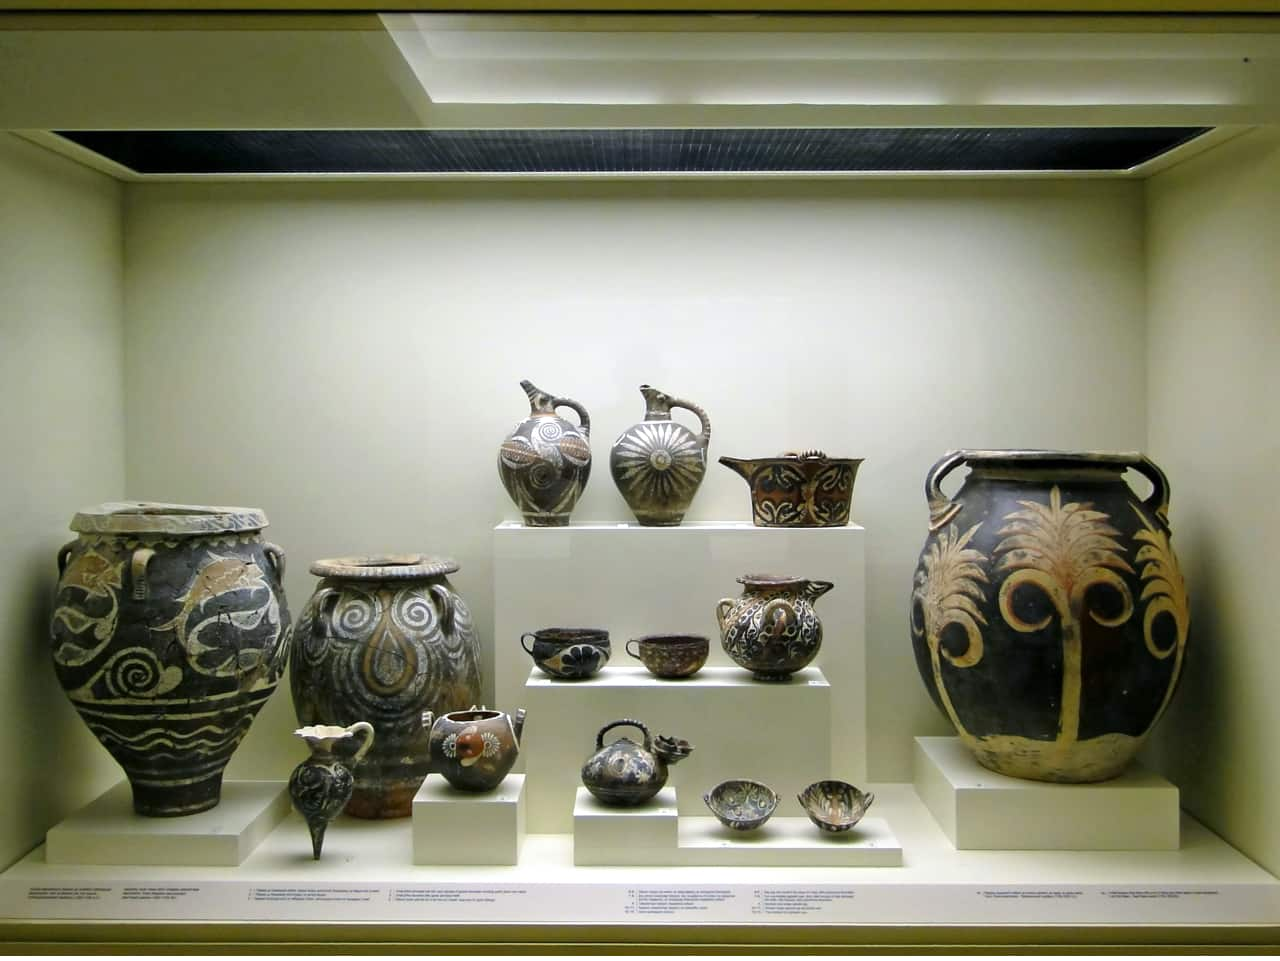 Shore Excursion Heraklion Knossos Palace & Museum, shore excursion iraklion crete knossos museum, best cultural tour heraklion crete, tour with transfer knossos archaeological museum, expert local guide professional and licensed, cruise ship excursion